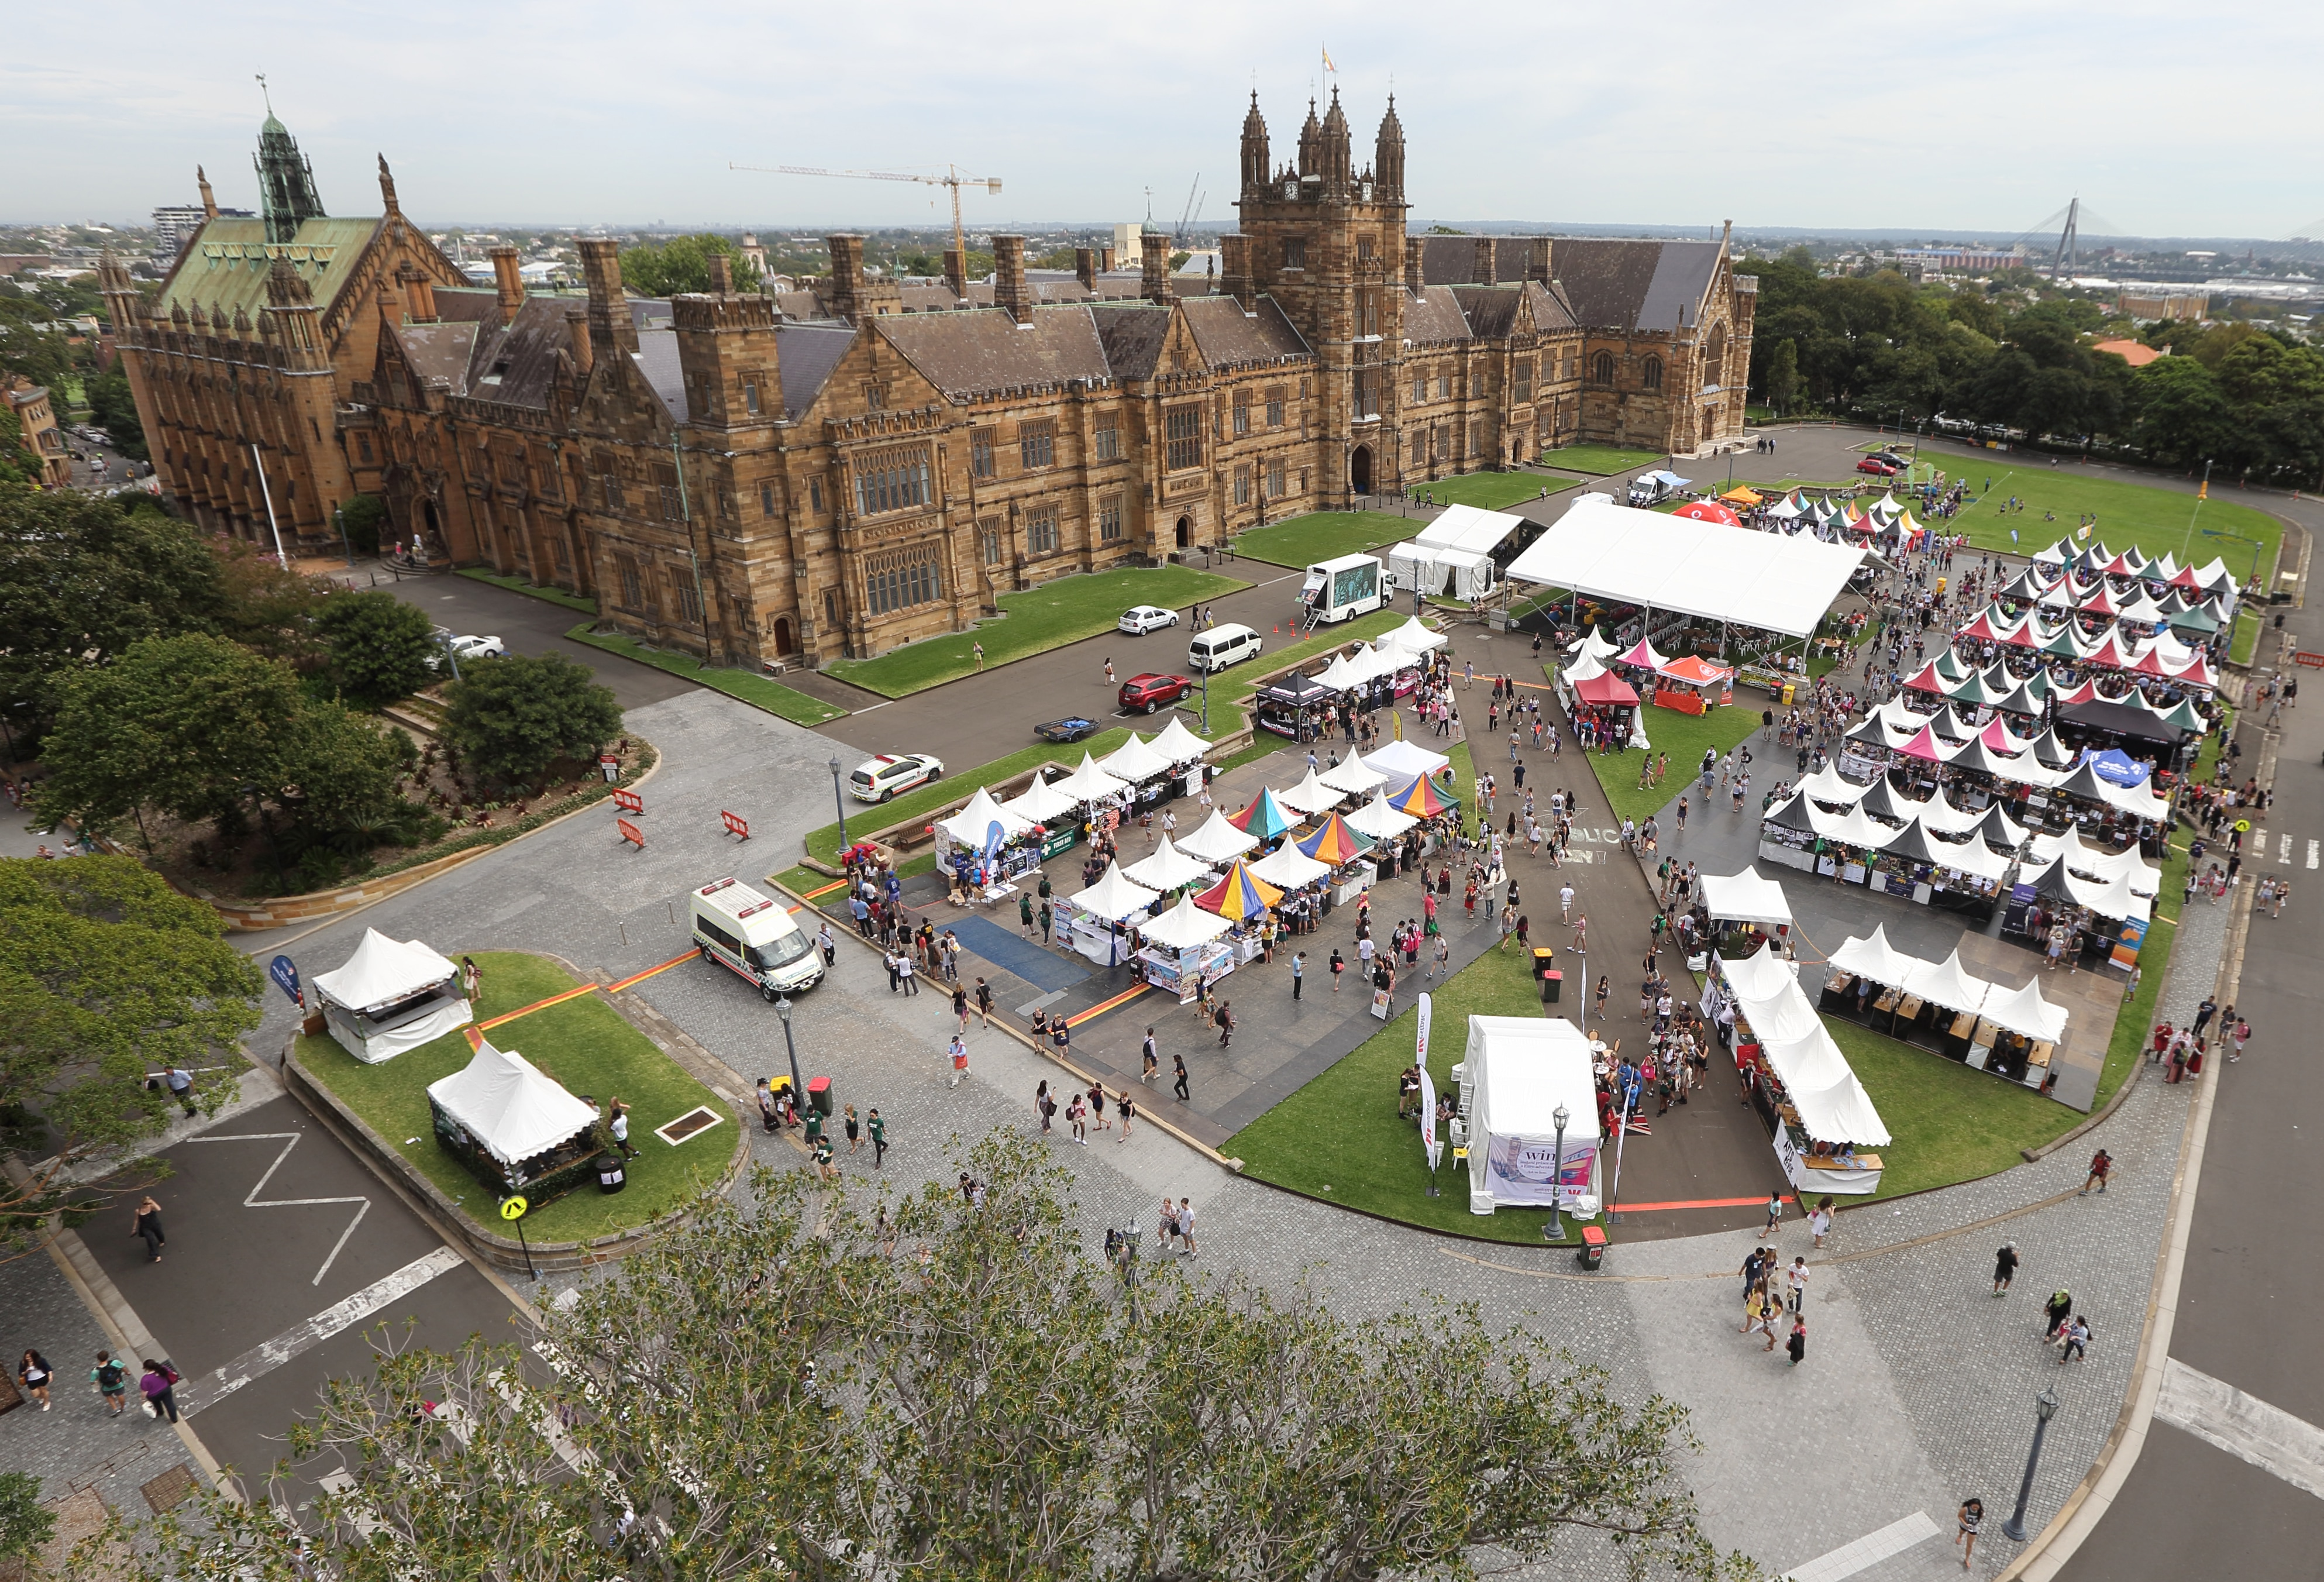 Get prepared for university at Orientation Week - The University ...